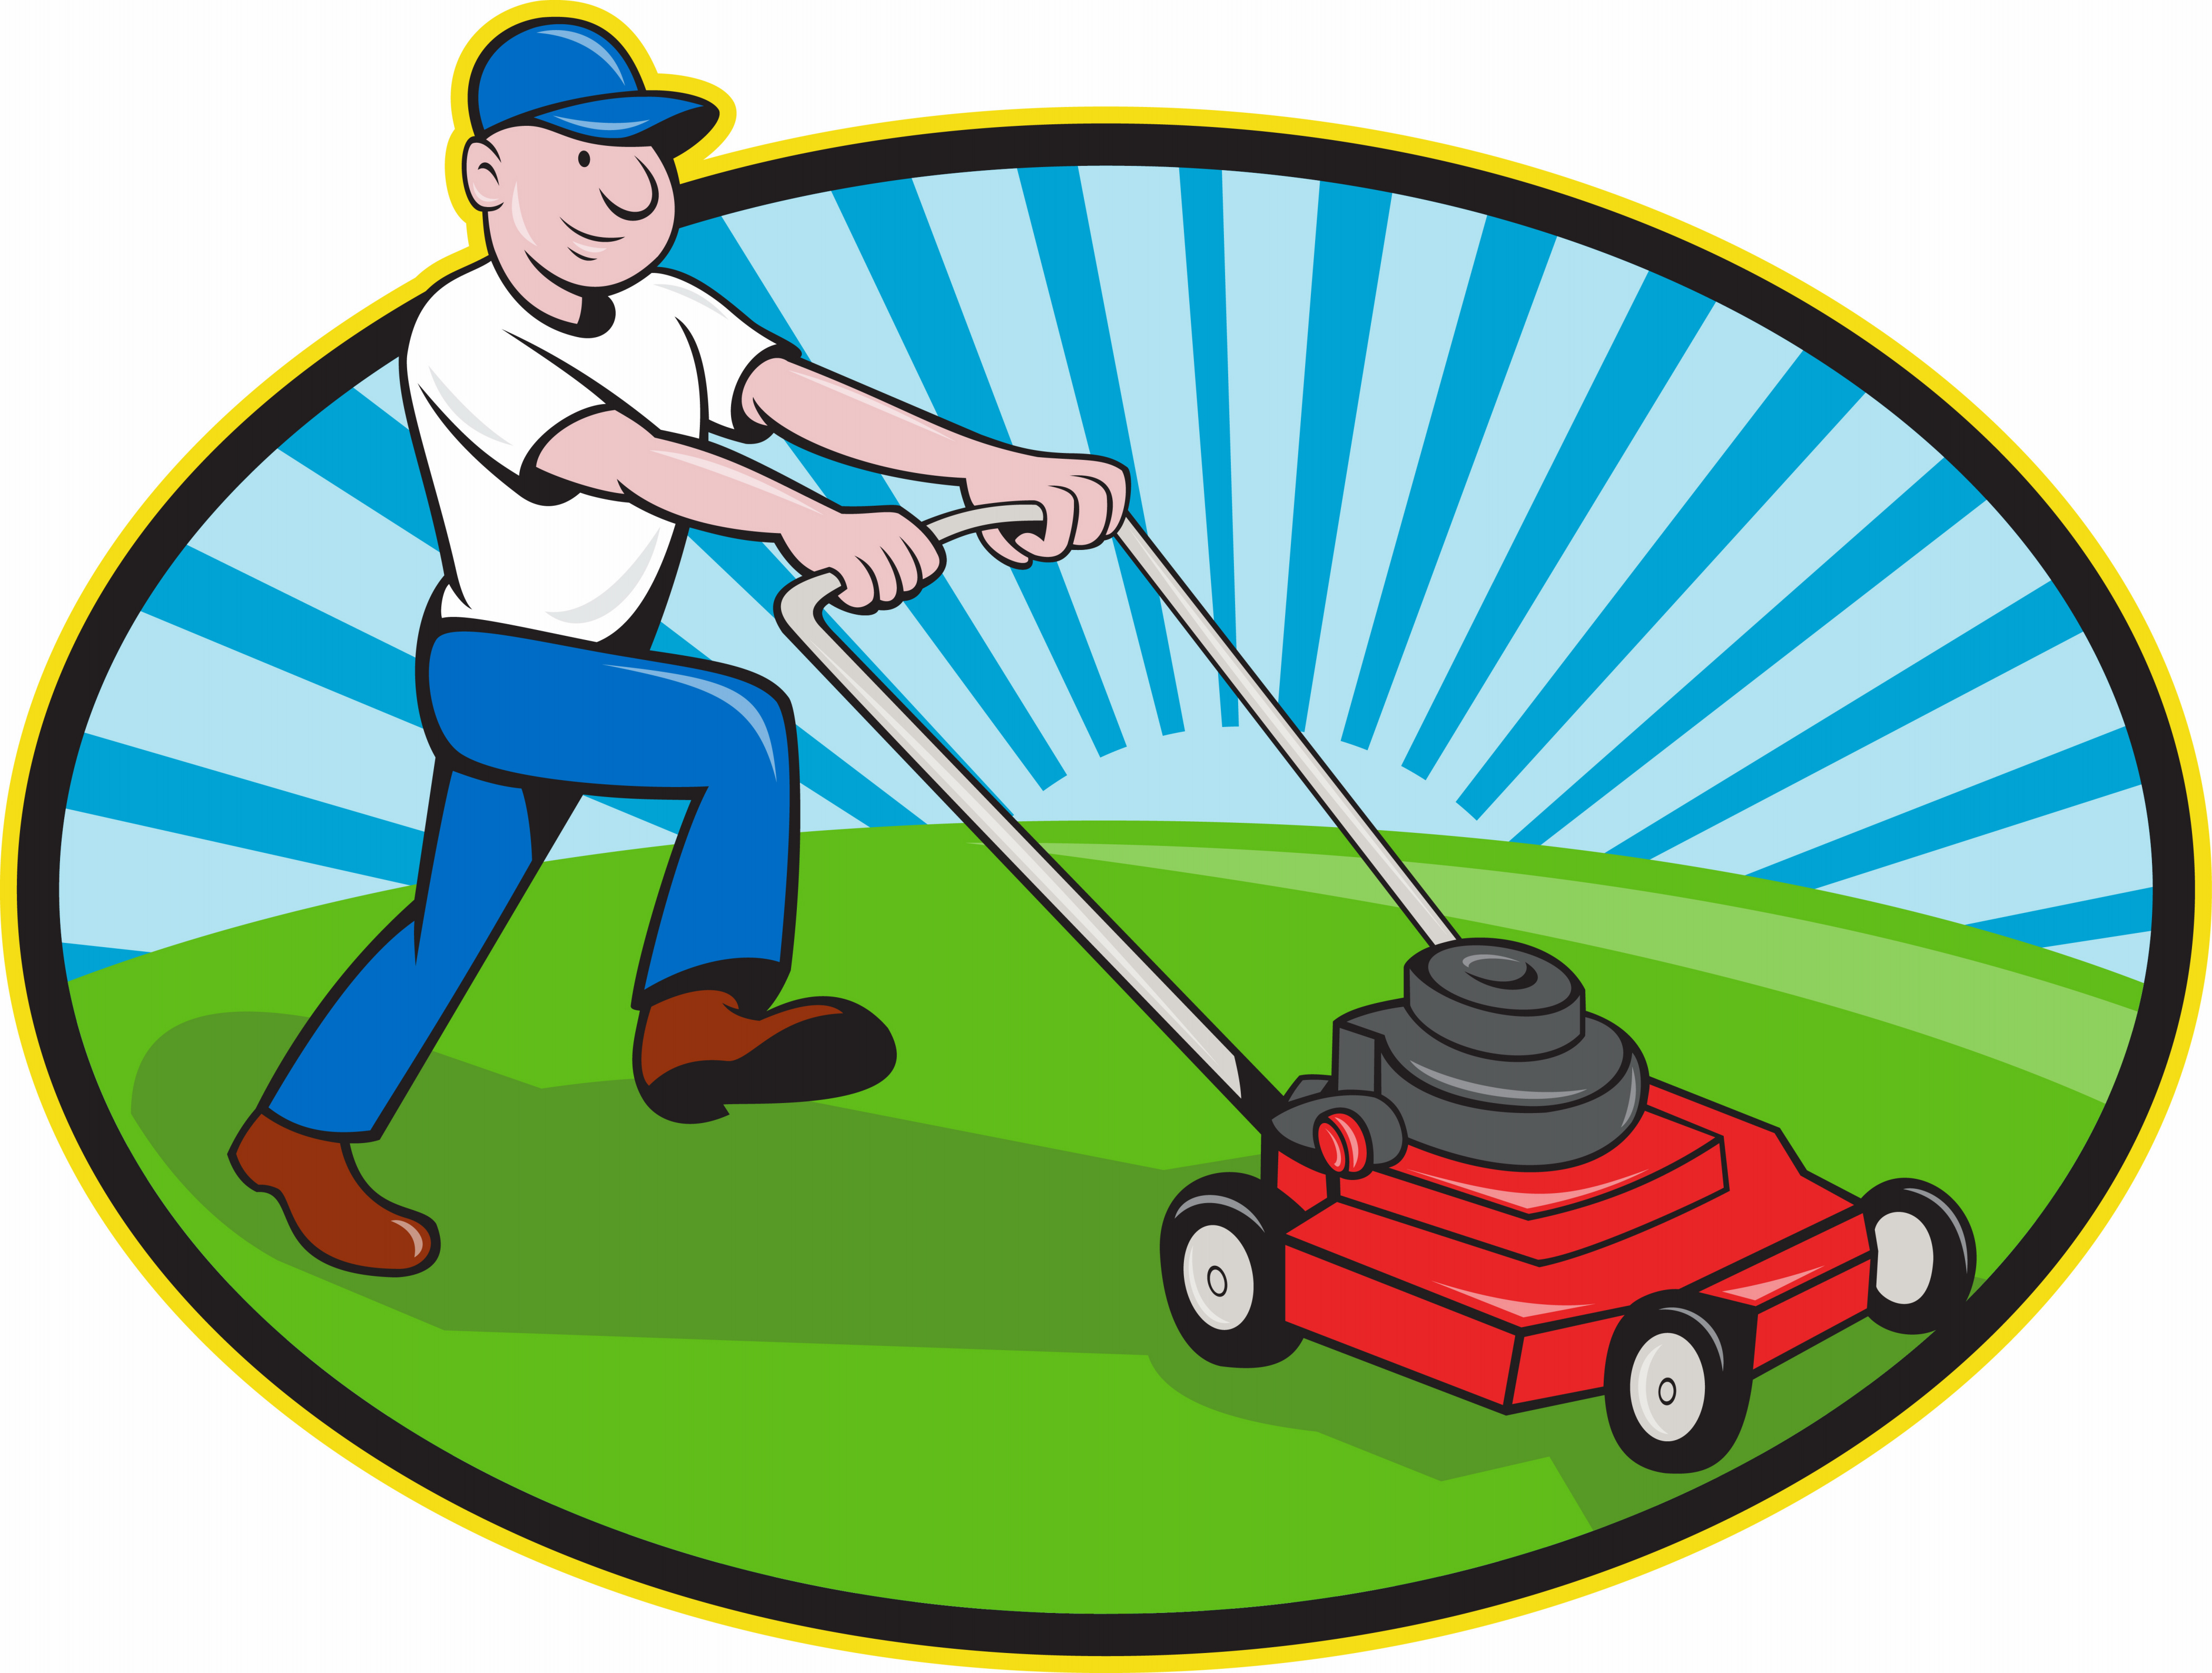 landscaping clipart man